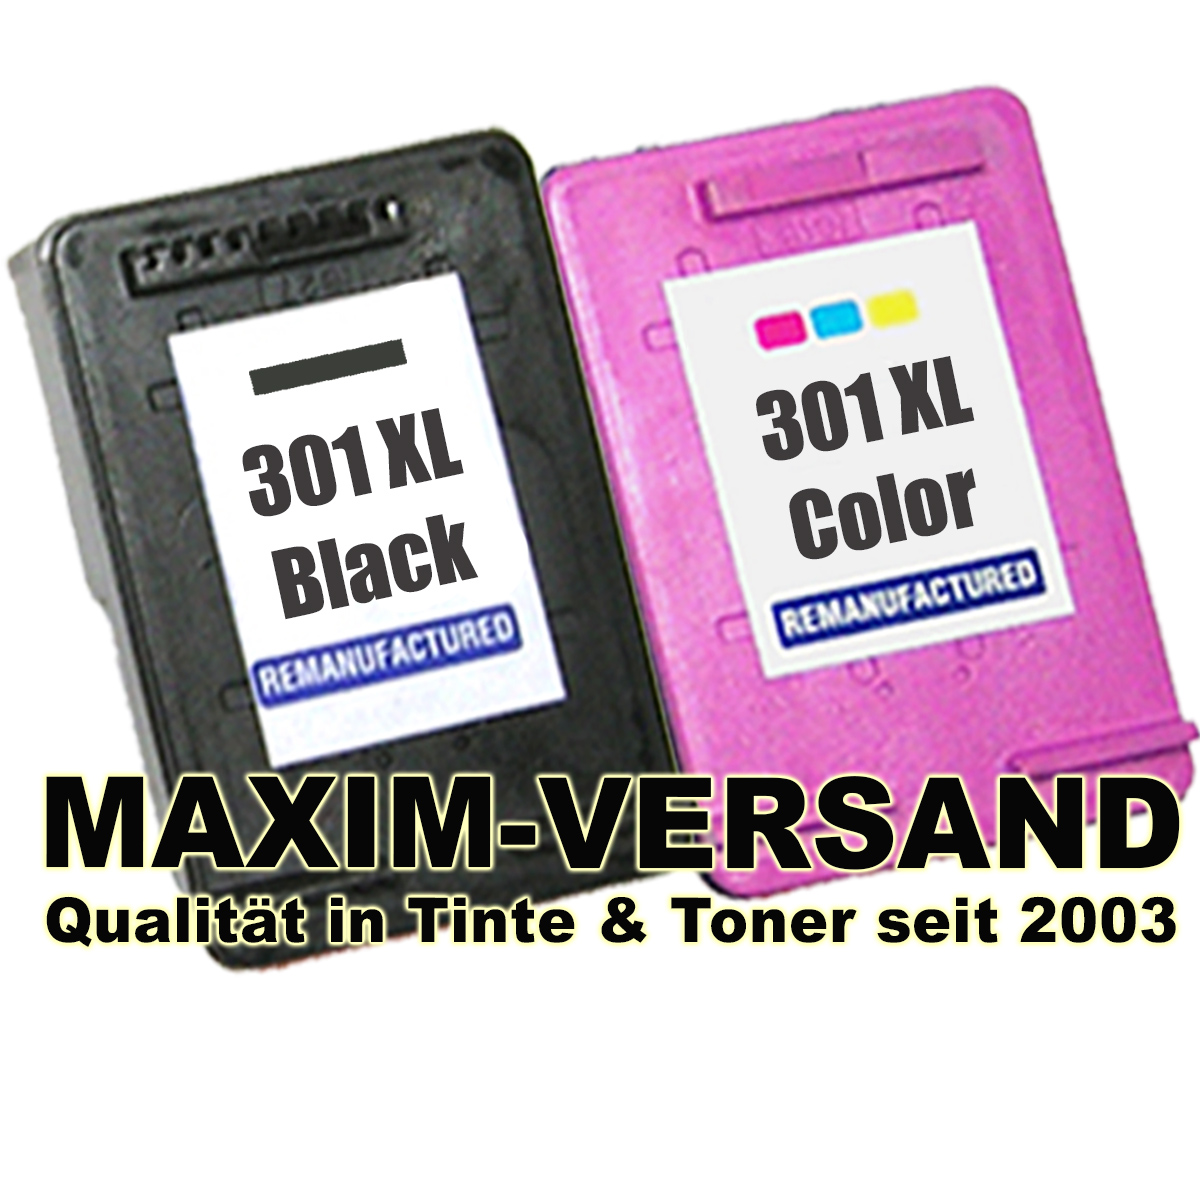 Patronen für HP 301 XL Black + HP 301 XL Color - kompatibel (2er Set)